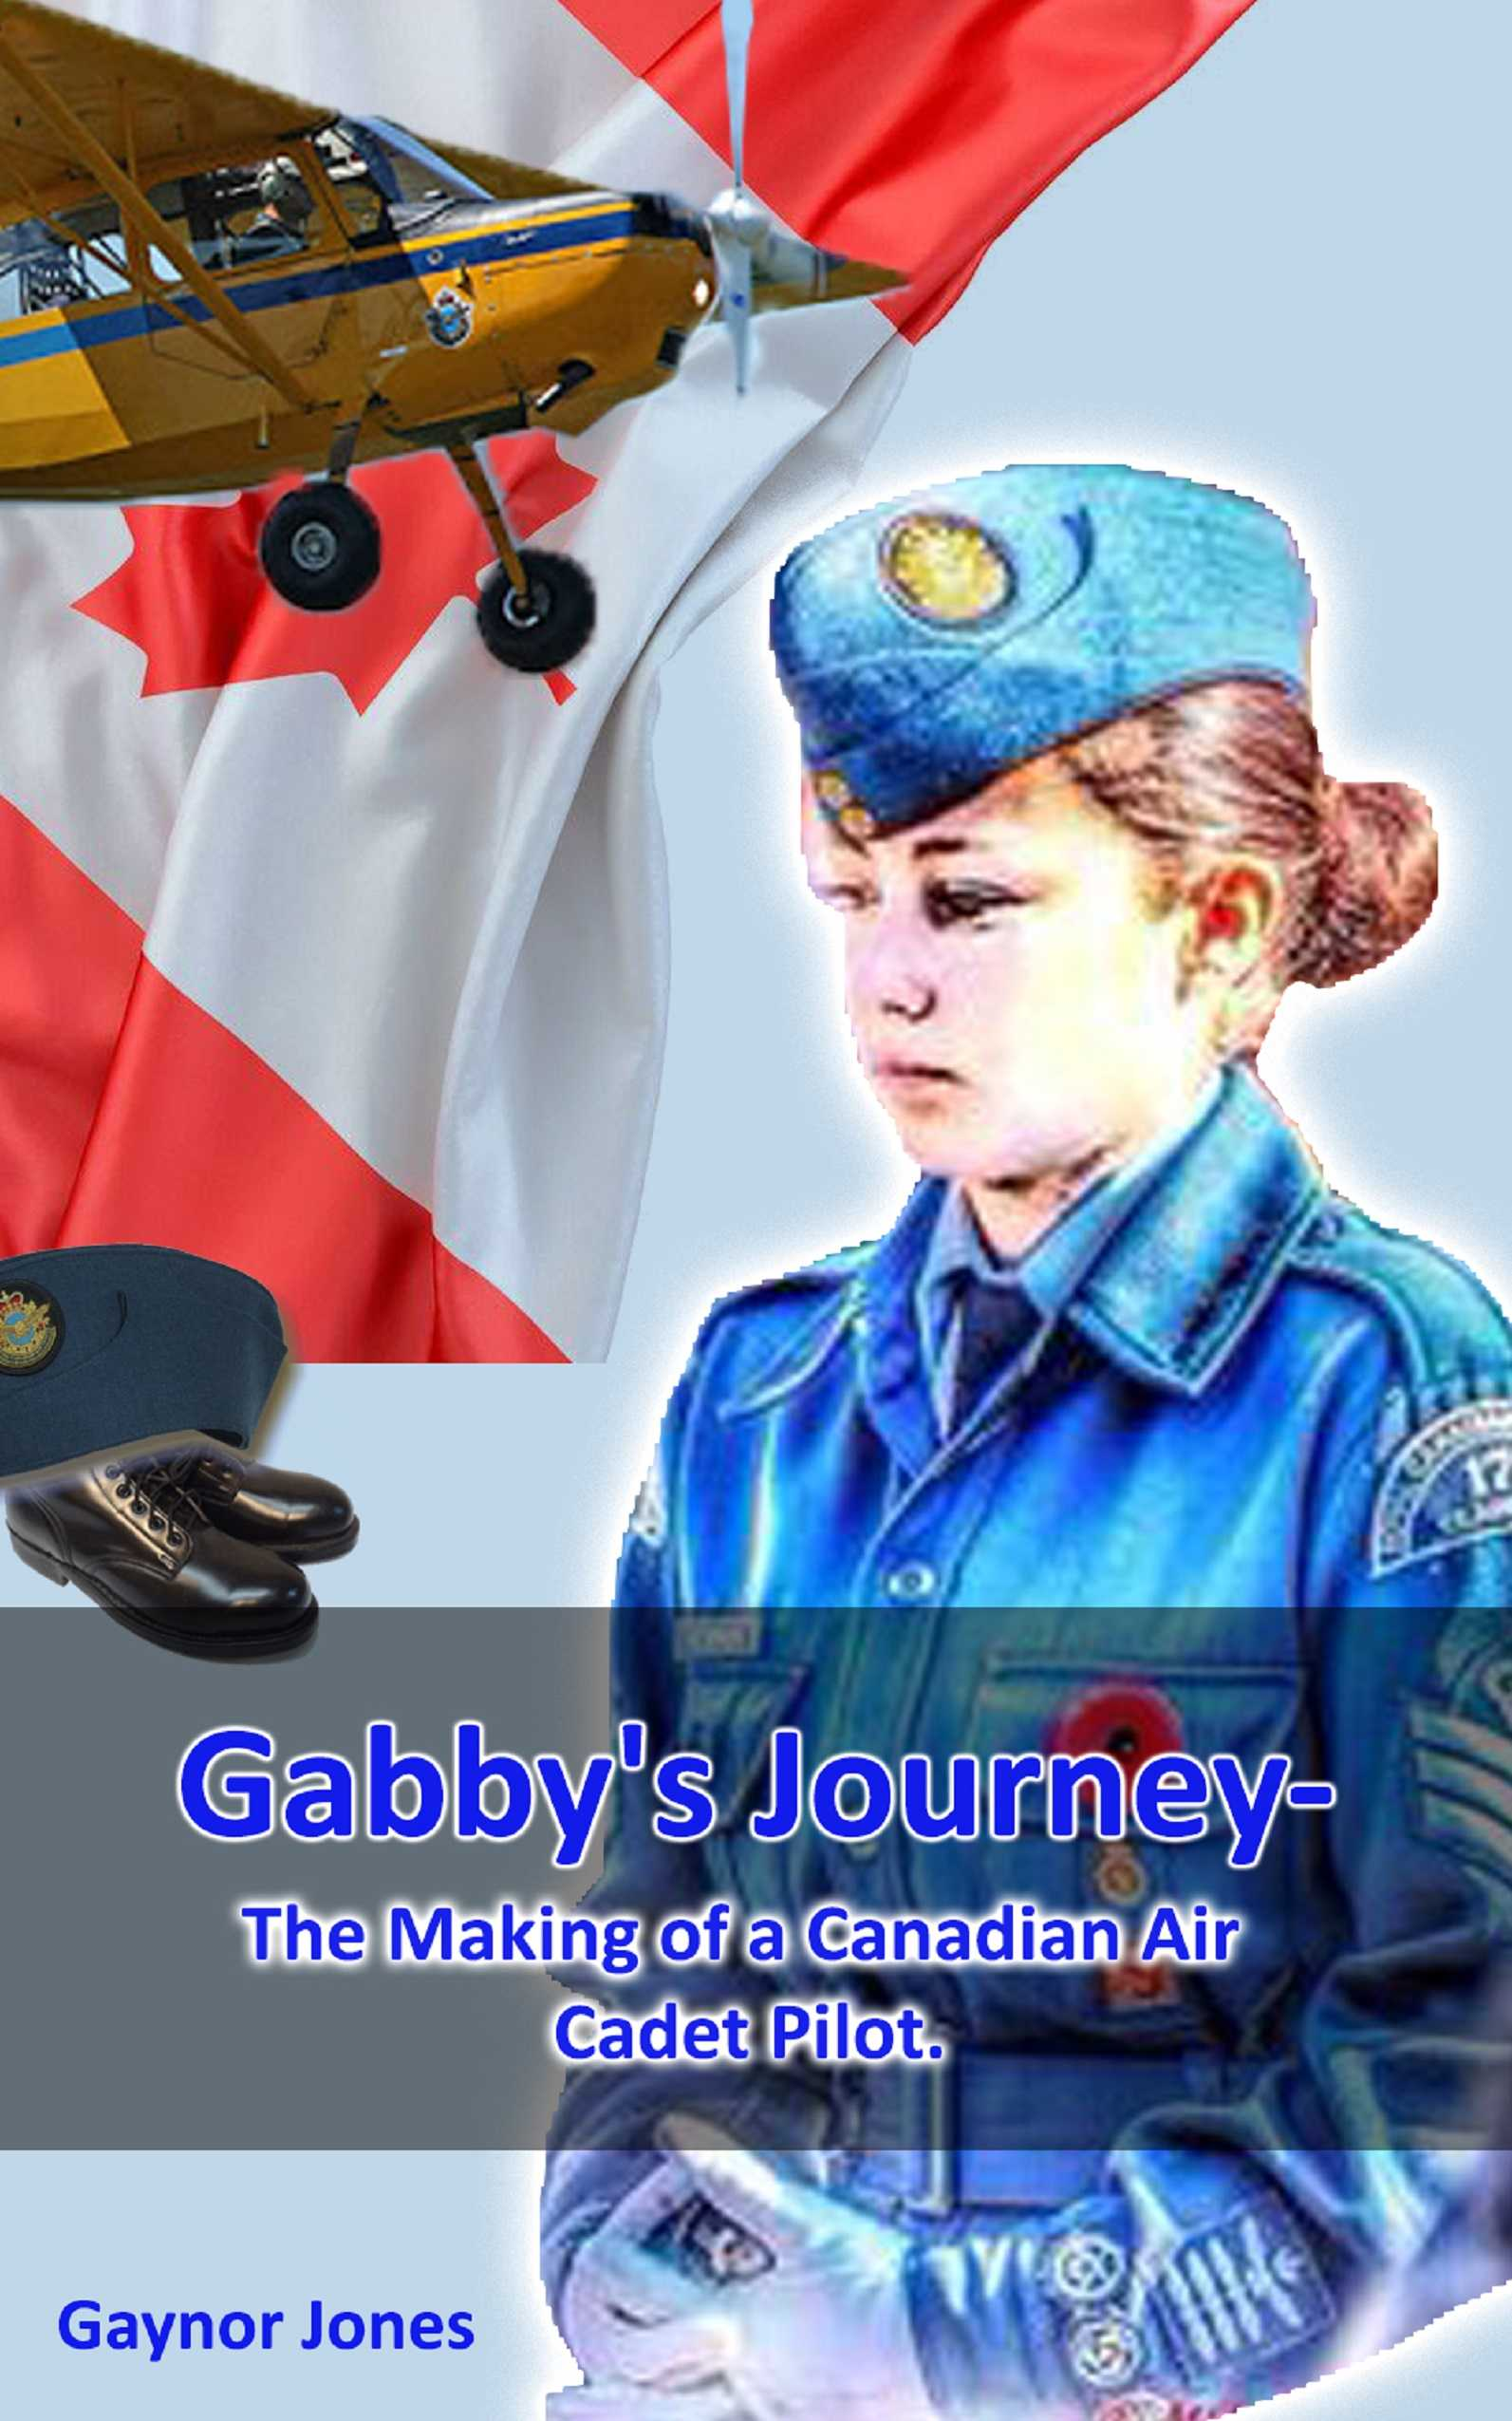 Gabby's Journey-The Making of a Canadian Air Cadet Pilot